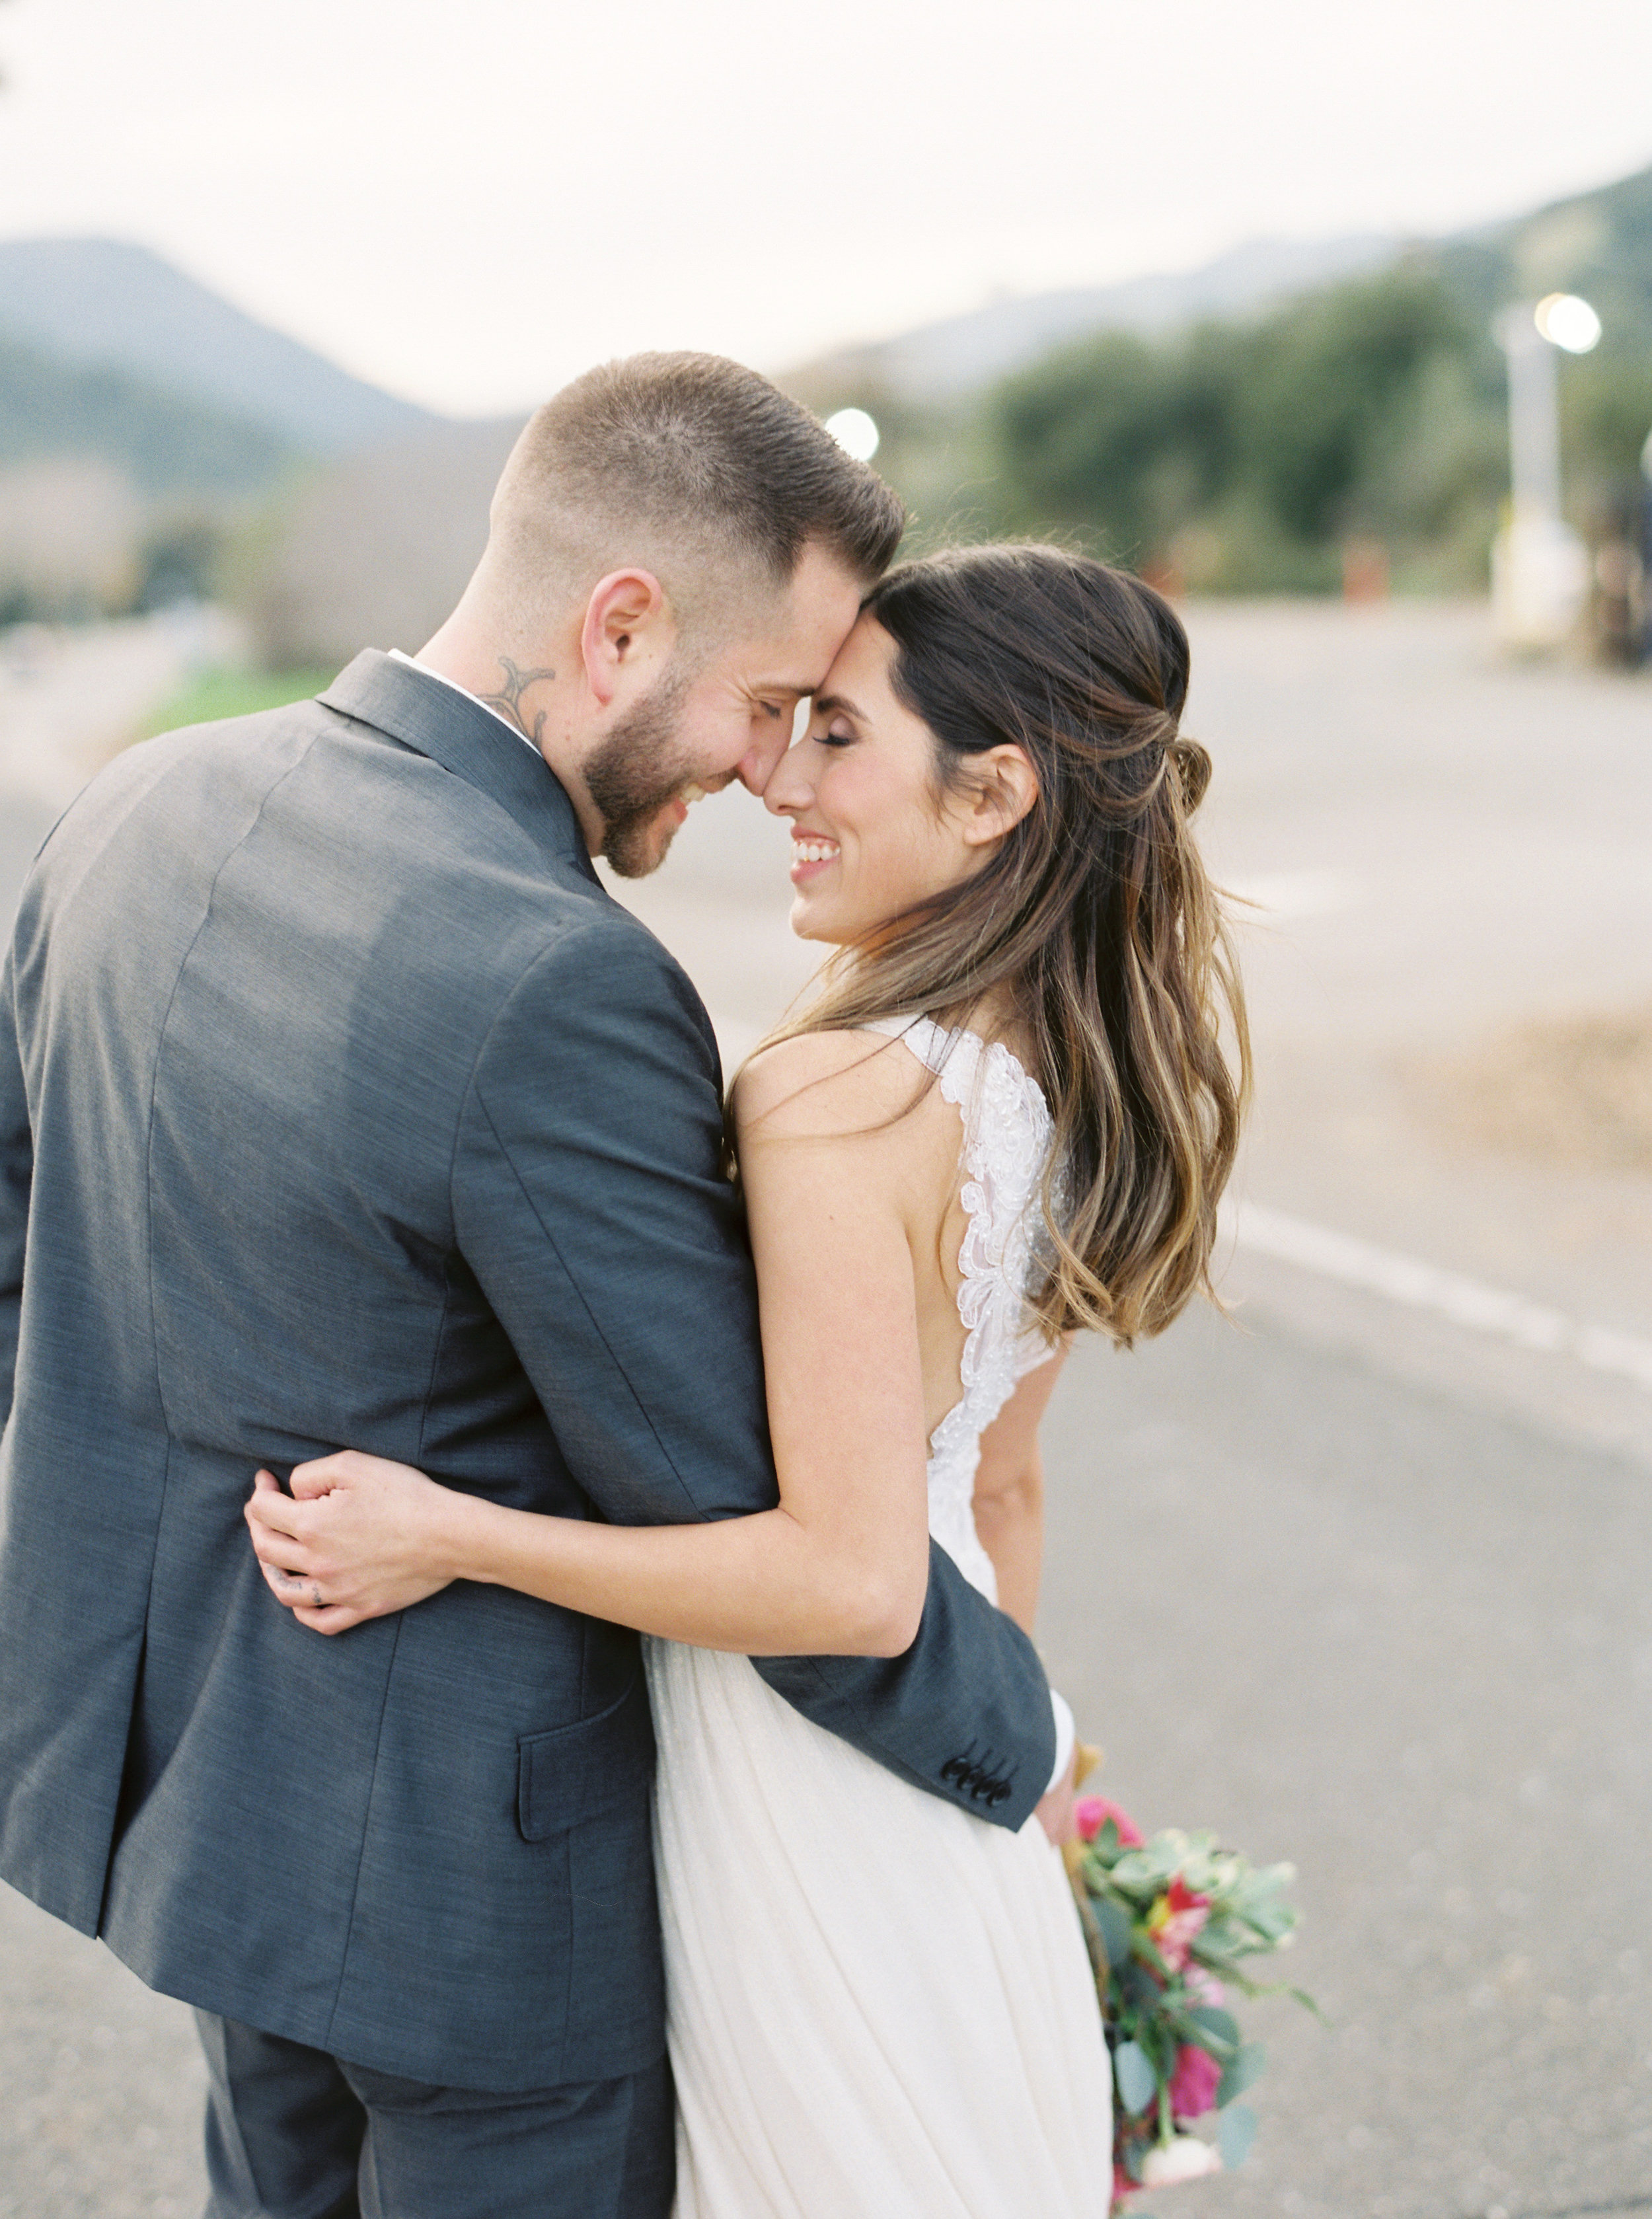 boho-inspired-wedding-at-casa-bella-in-sunol-california-38.jpg